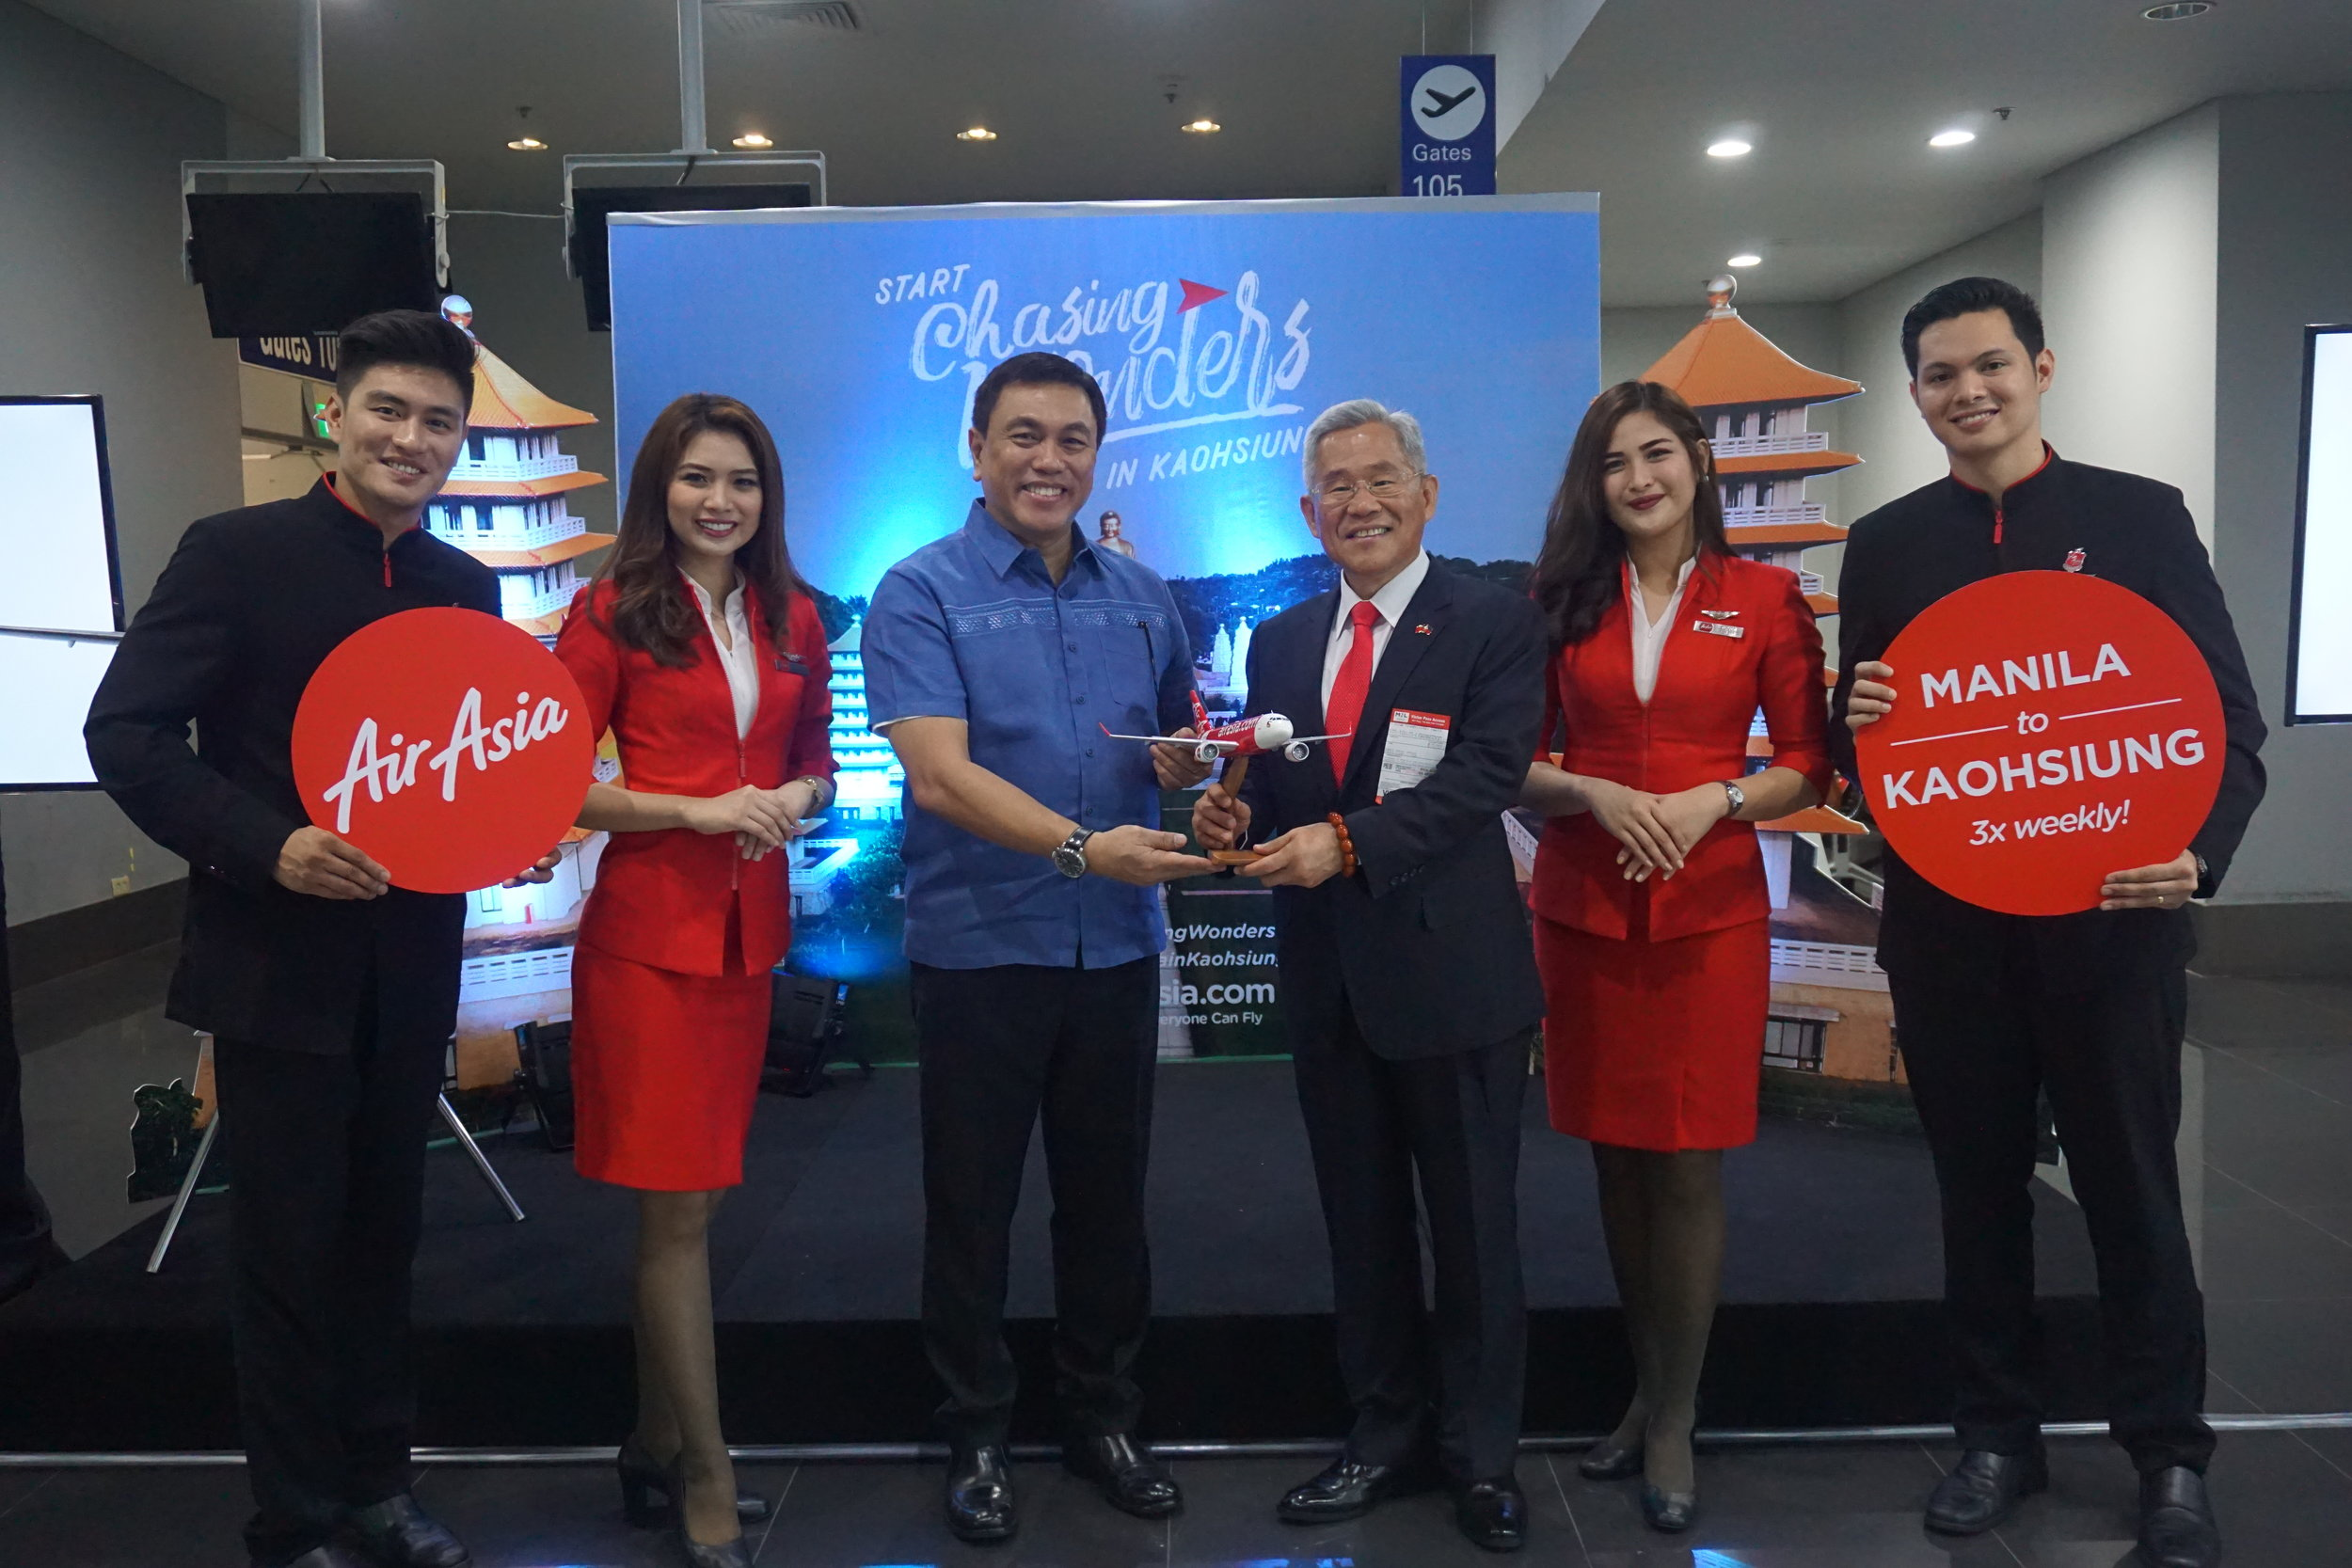 (3rd from left) AirAsia Philippines CEO and pilot Captain Dexter Comendador and Ambassador Michael Peiyung Hsu of Taiwan Economic Cultural Office are flanked by AirAsia cabin crew.